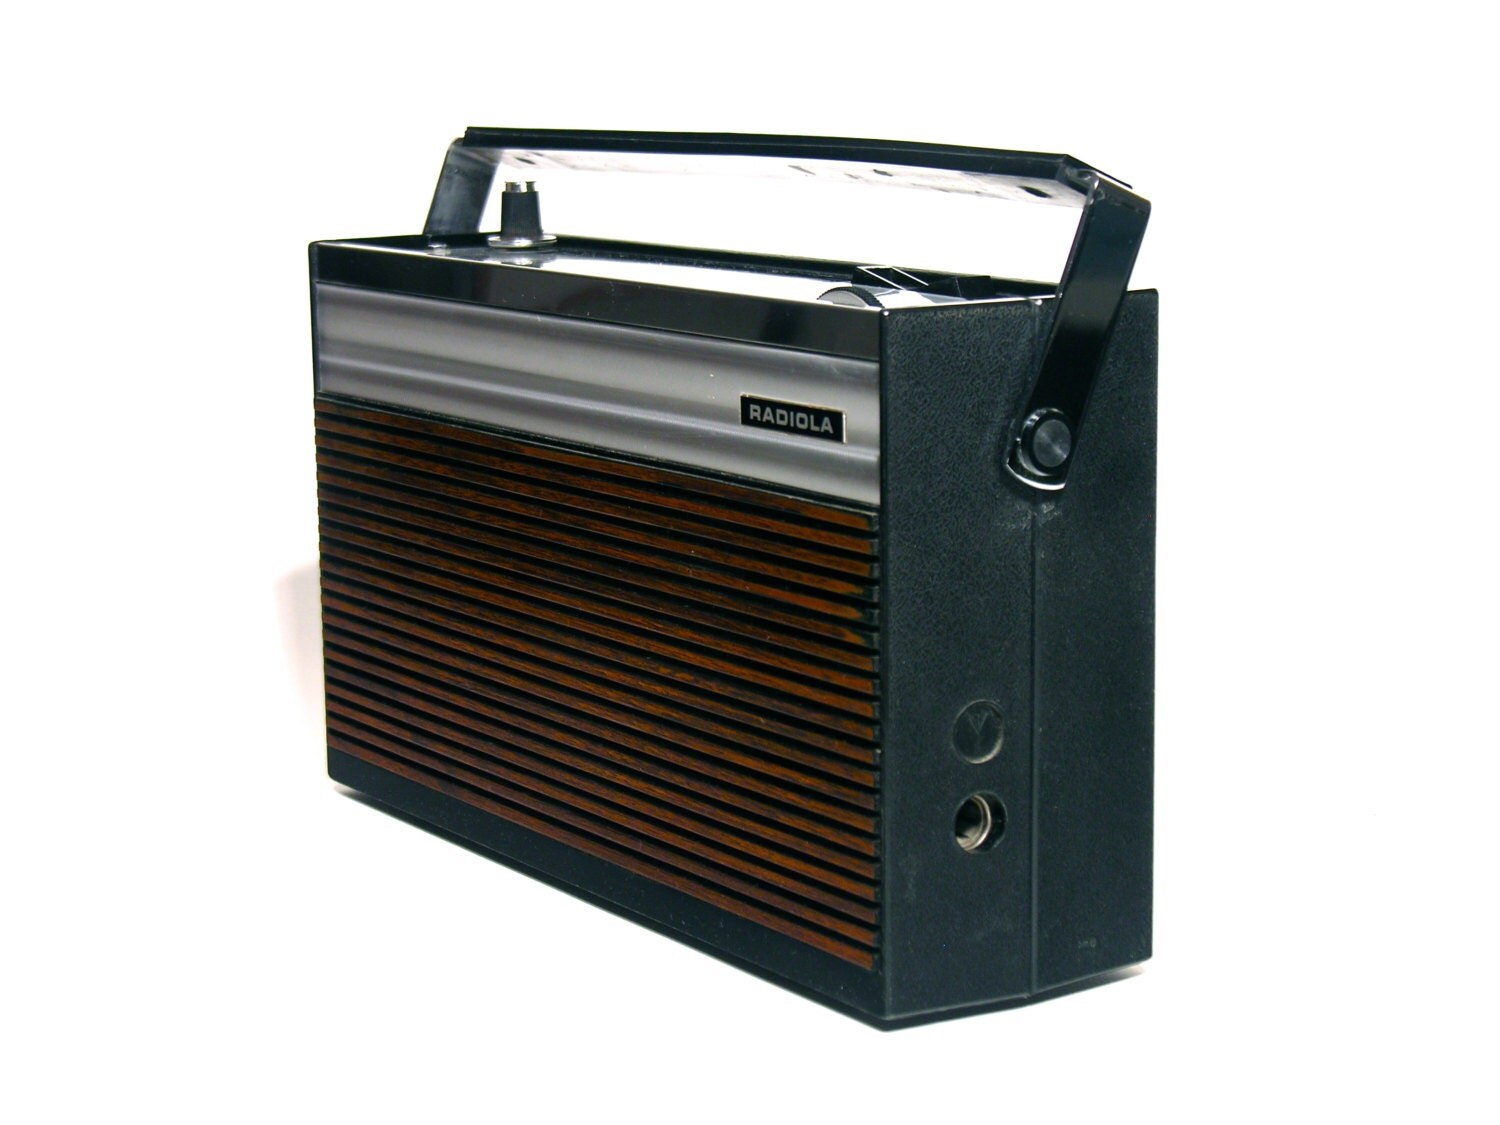 portative transistor french radio po go radiola 1960. Black Bedroom Furniture Sets. Home Design Ideas